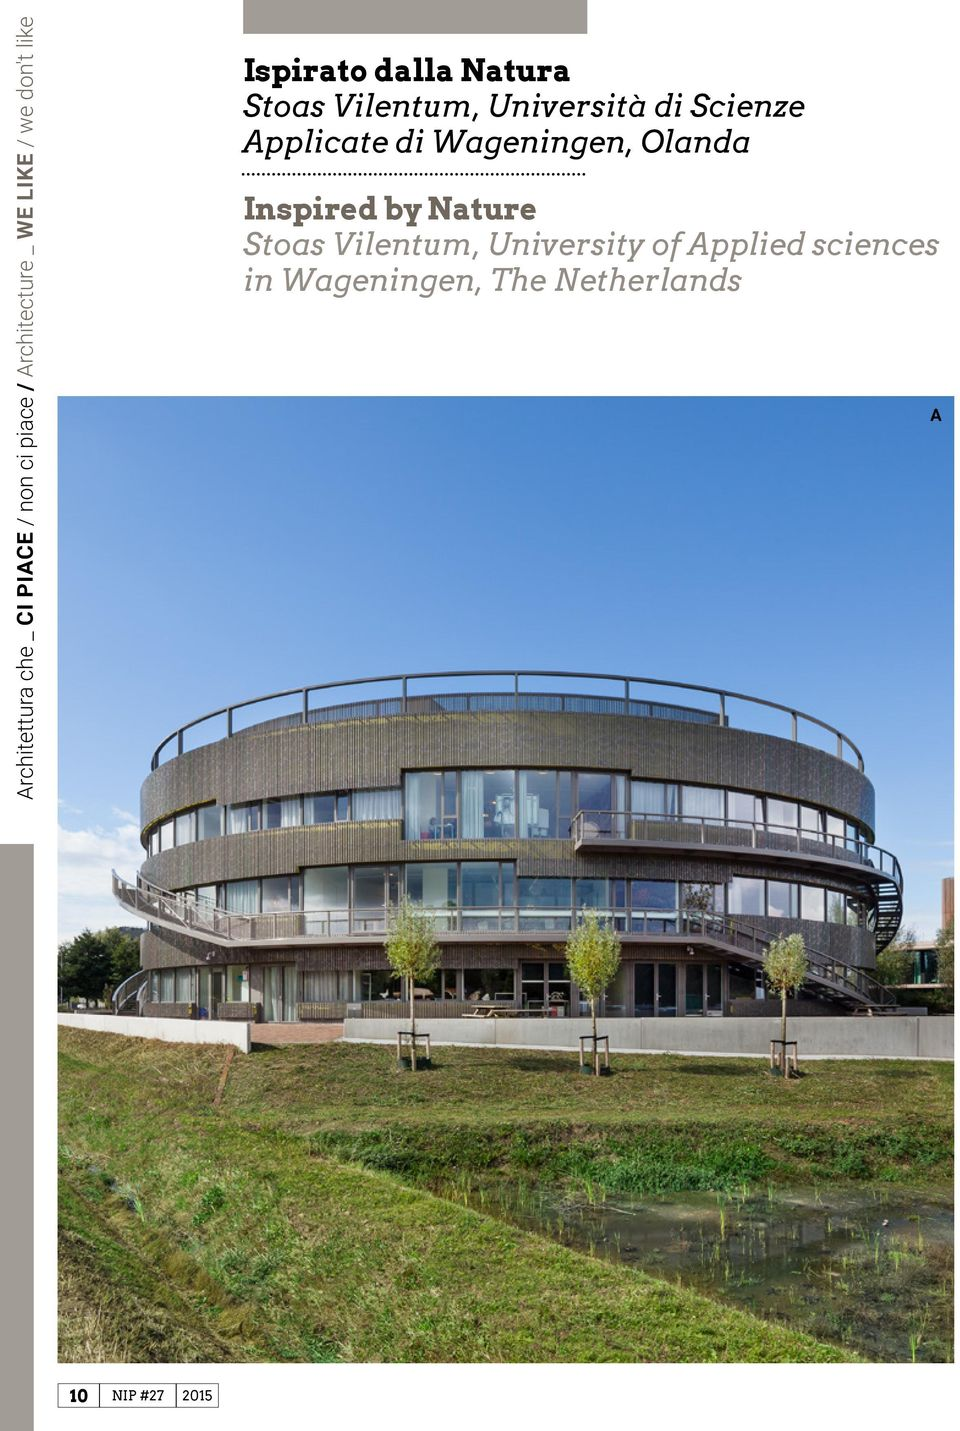 Applicate di Wageningen, Olanda Inspired by Nature Stoas Vilentum,